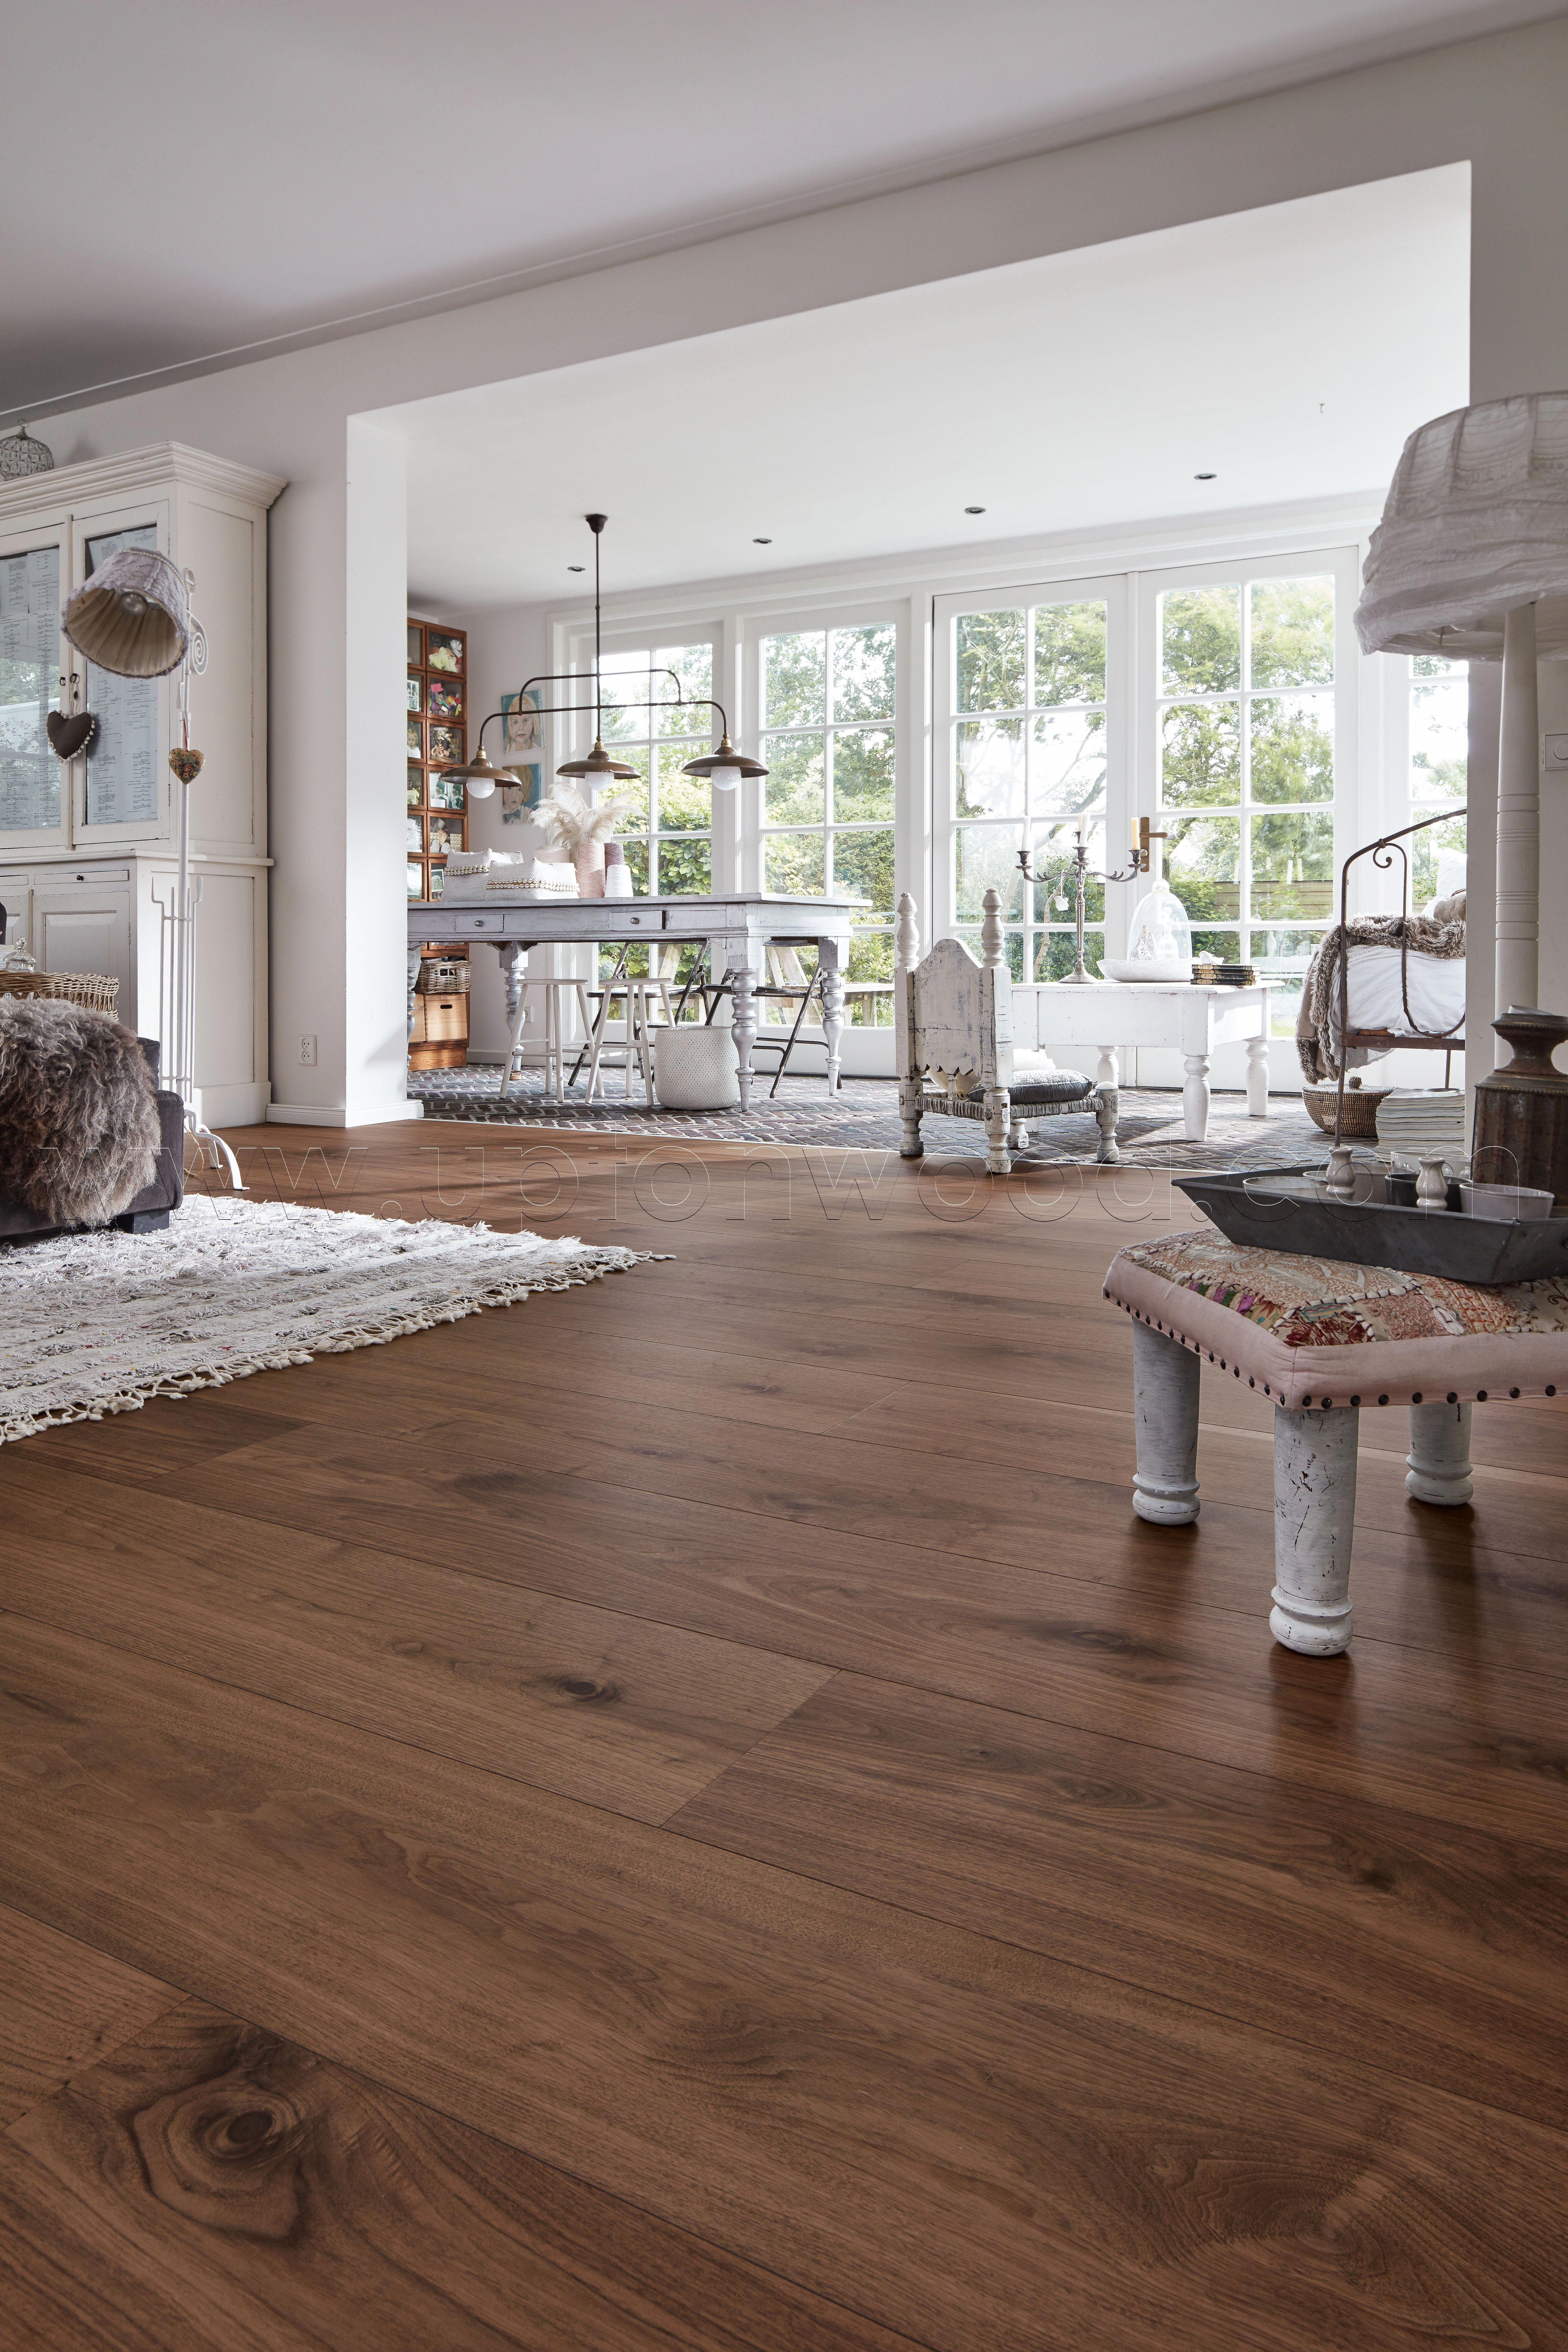 27 Marvelous Creative Concepts For Darkhardwoodfloors House Flooring Flooring Home